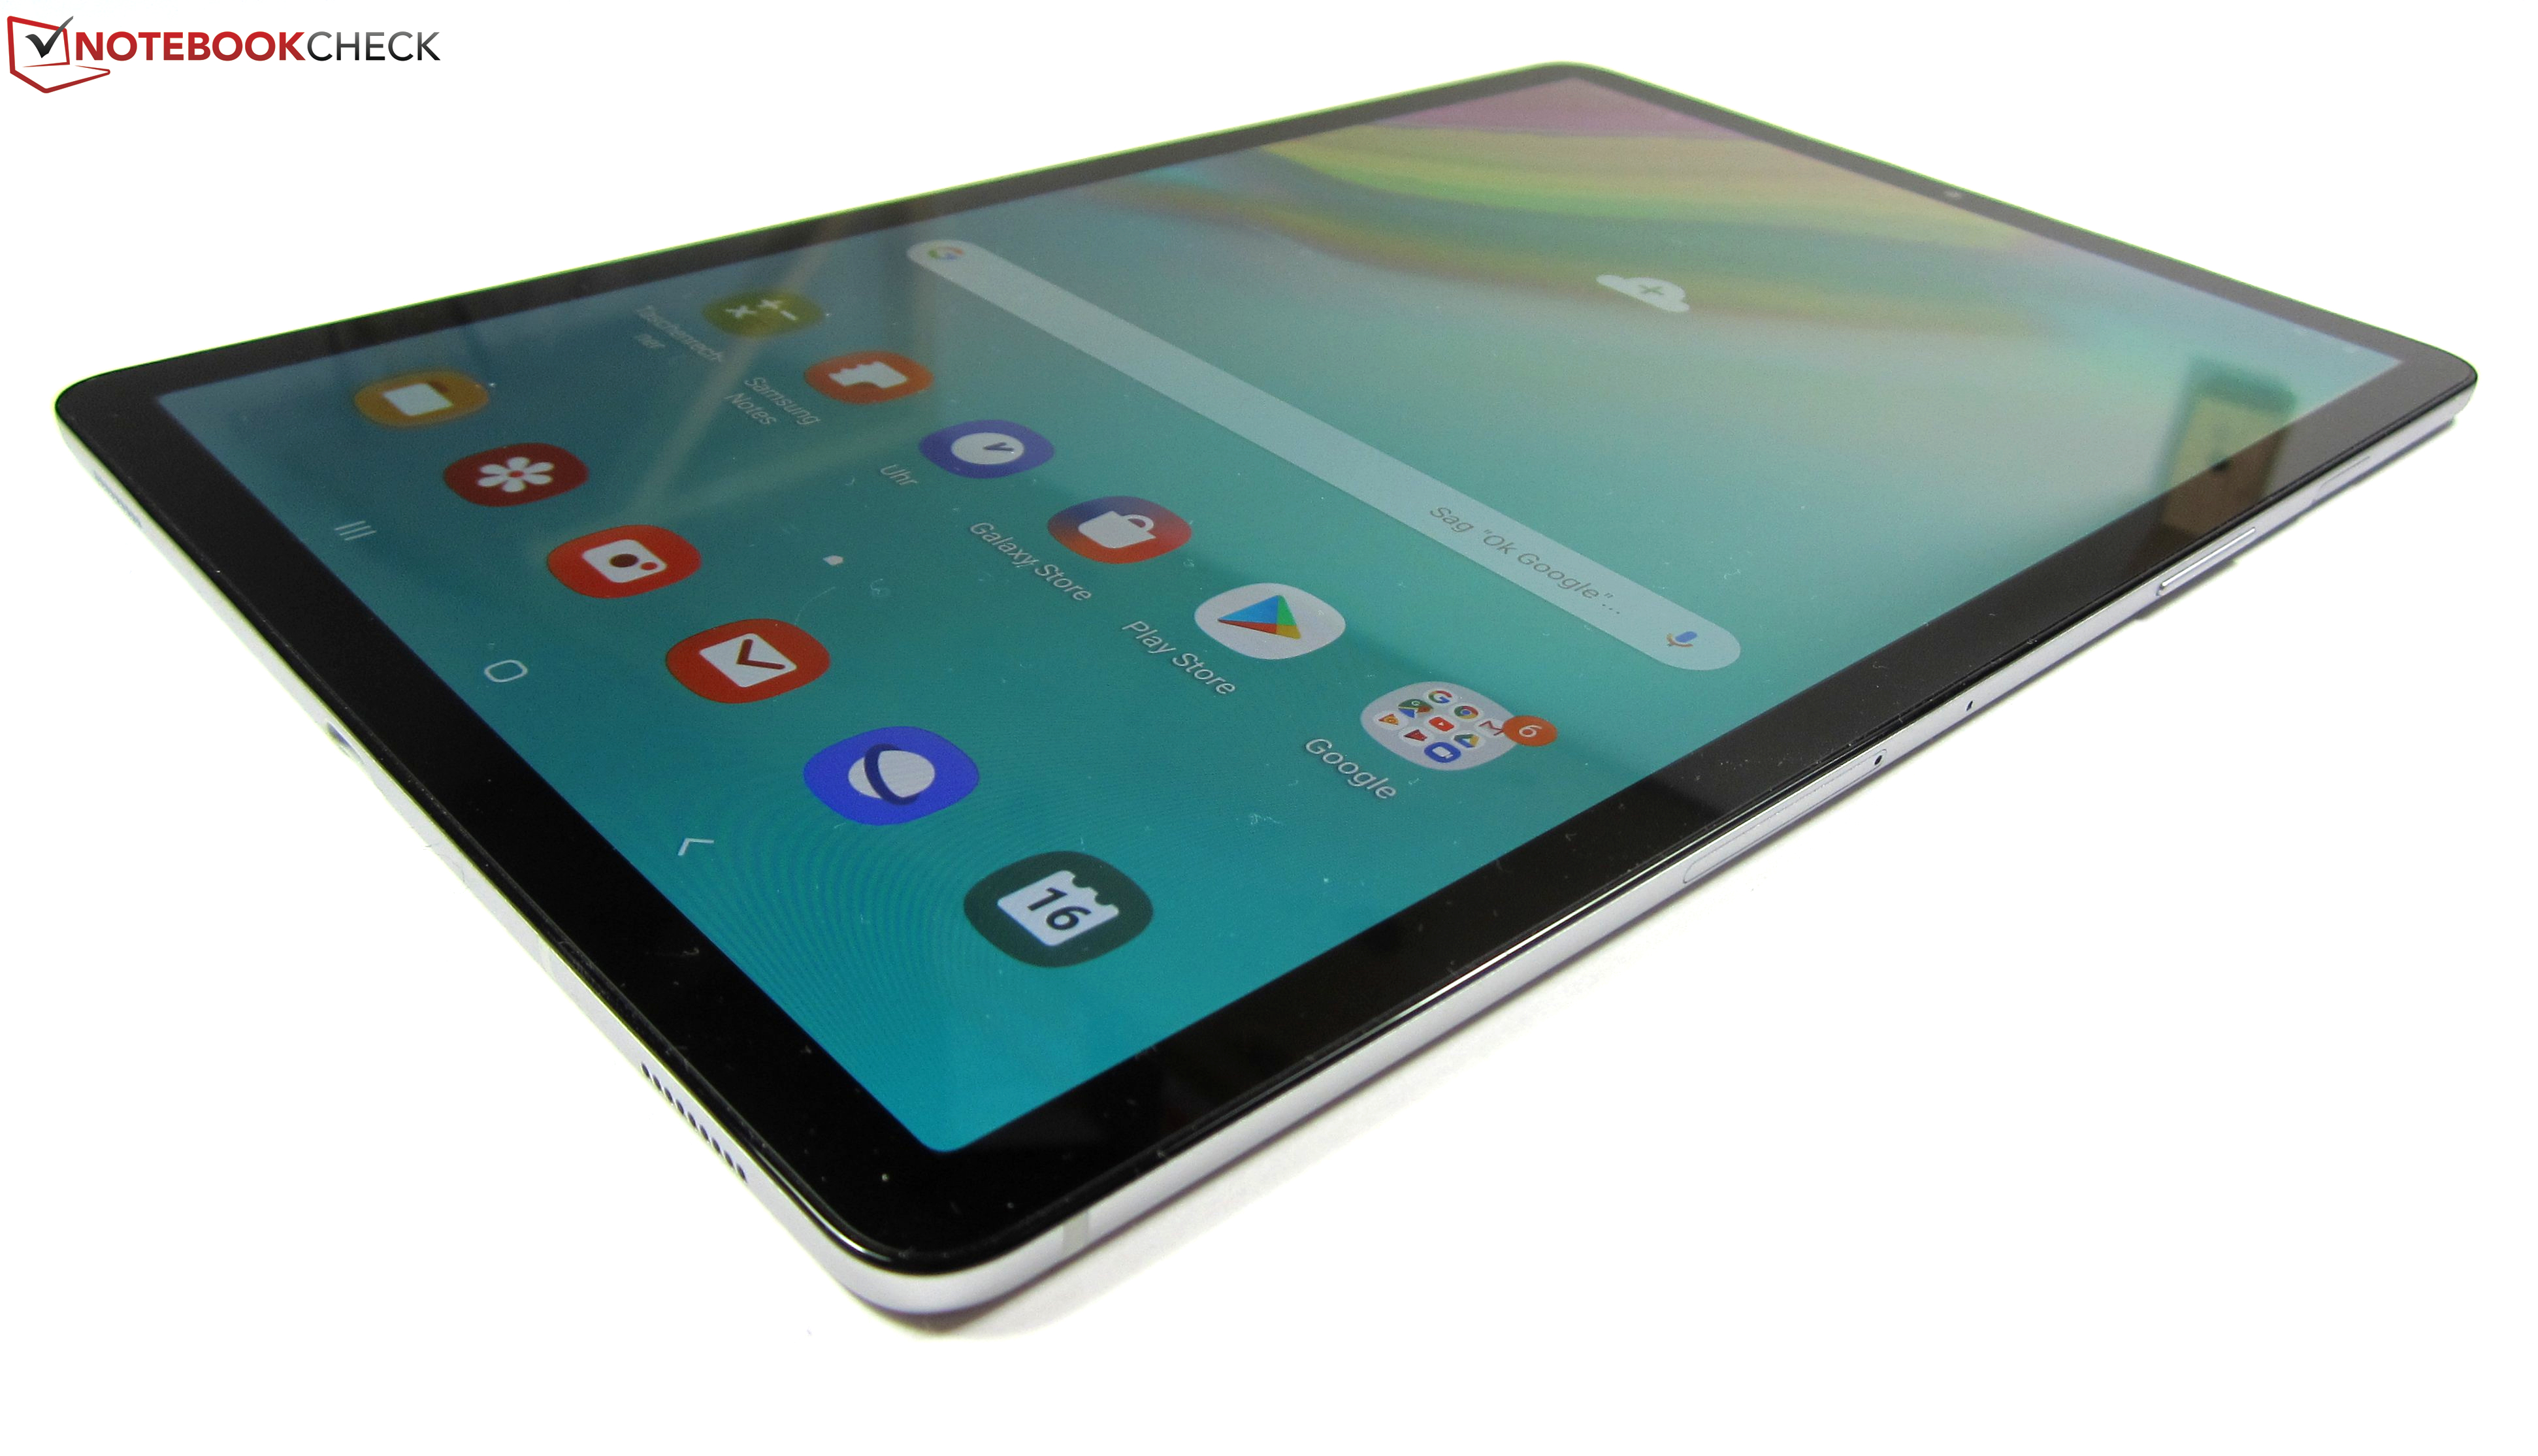 Samsung Galaxy Tab S5e (Wi-Fi) Tablet Review - NotebookCheck